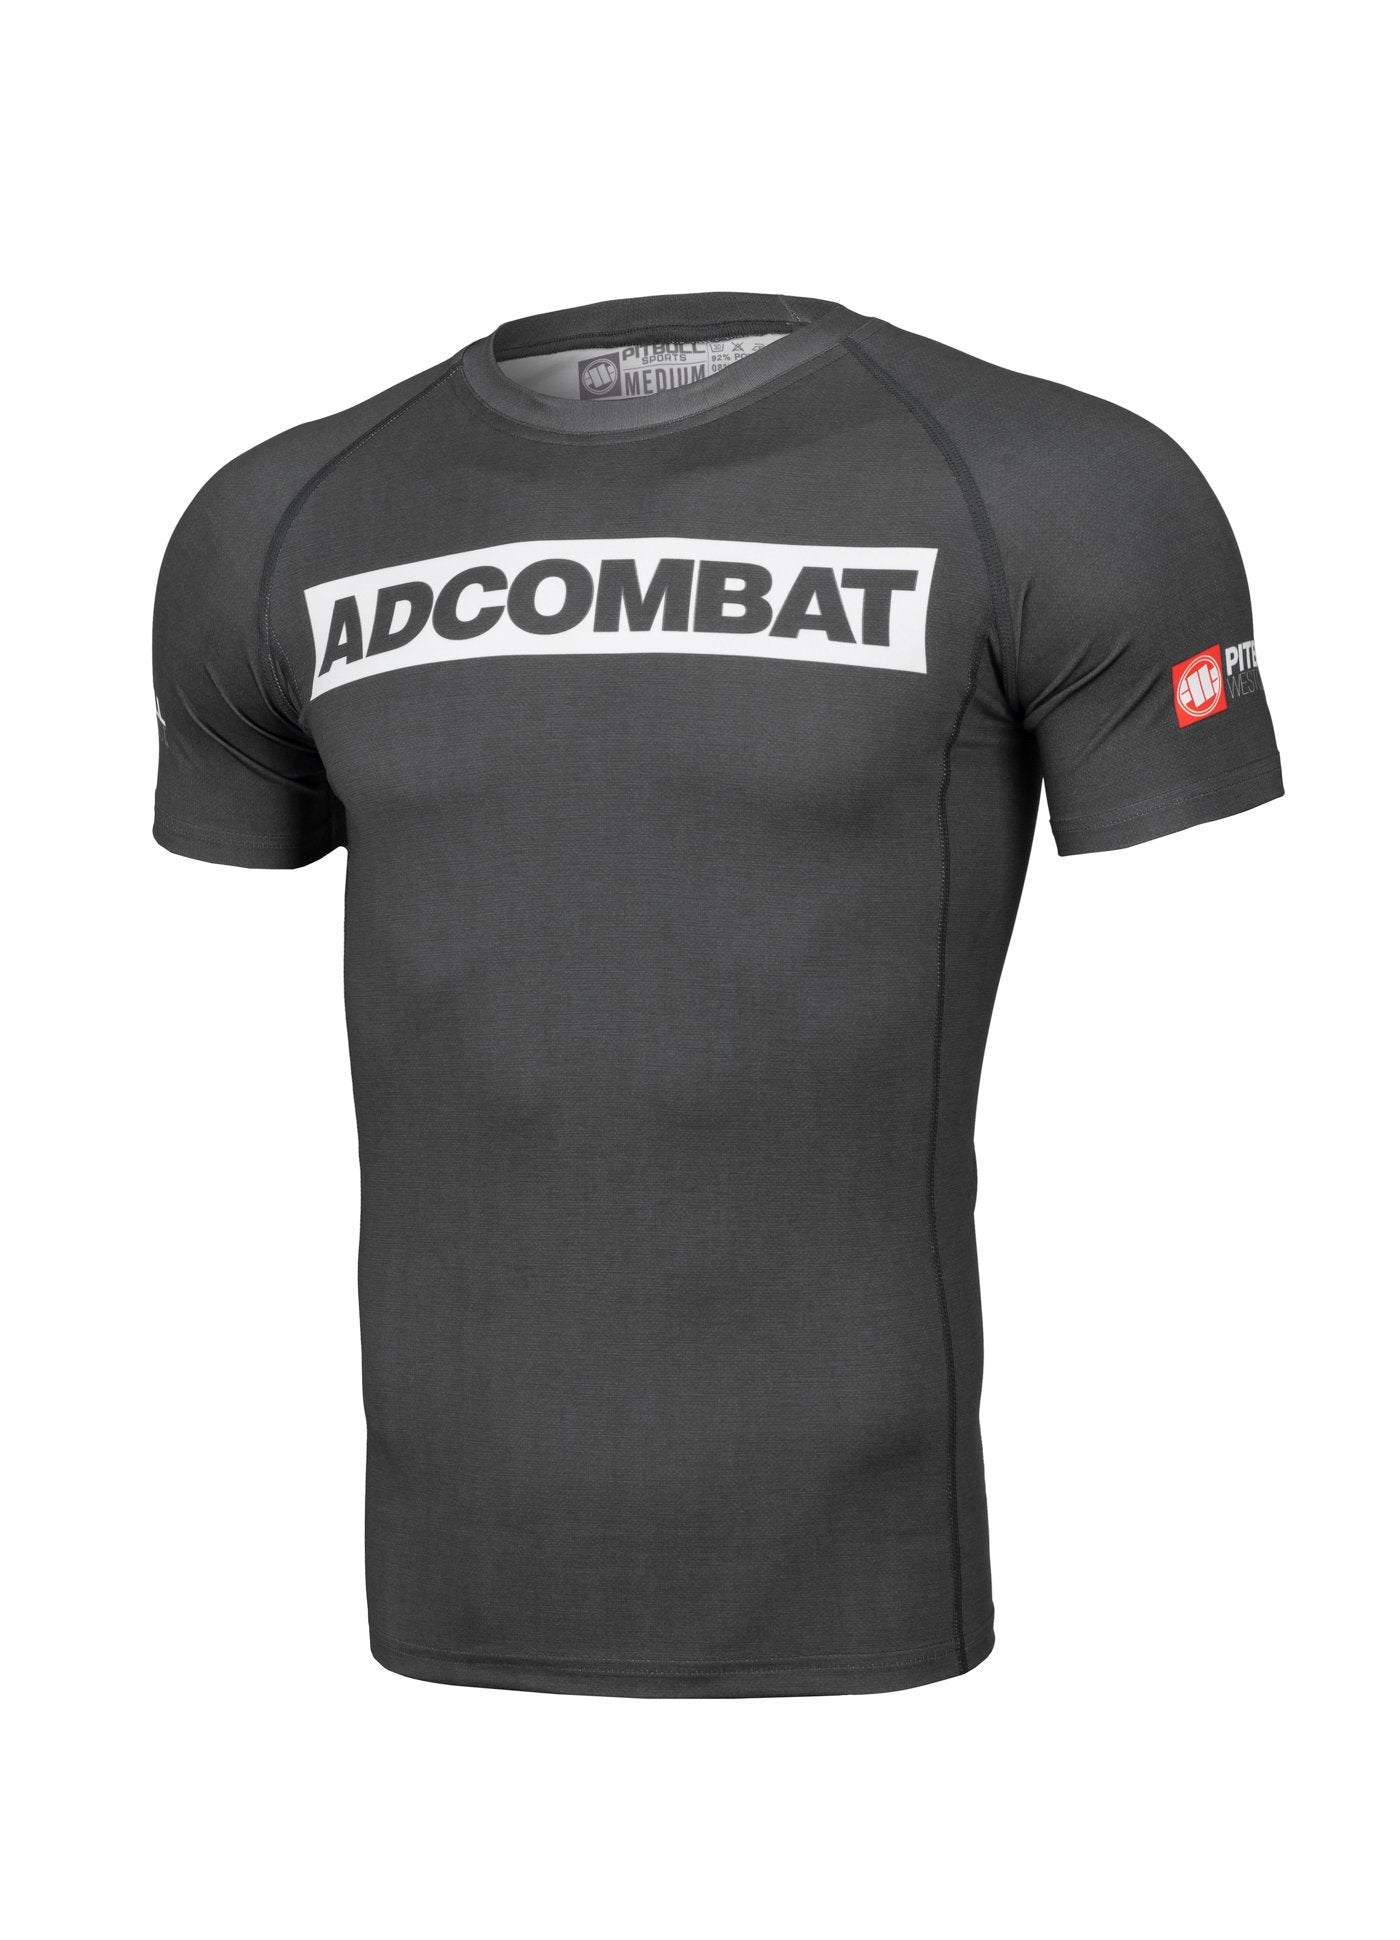 ADCC HILLTOP Short Sleeve Rashguard GREY - Pitbull West Coast U.S.A.